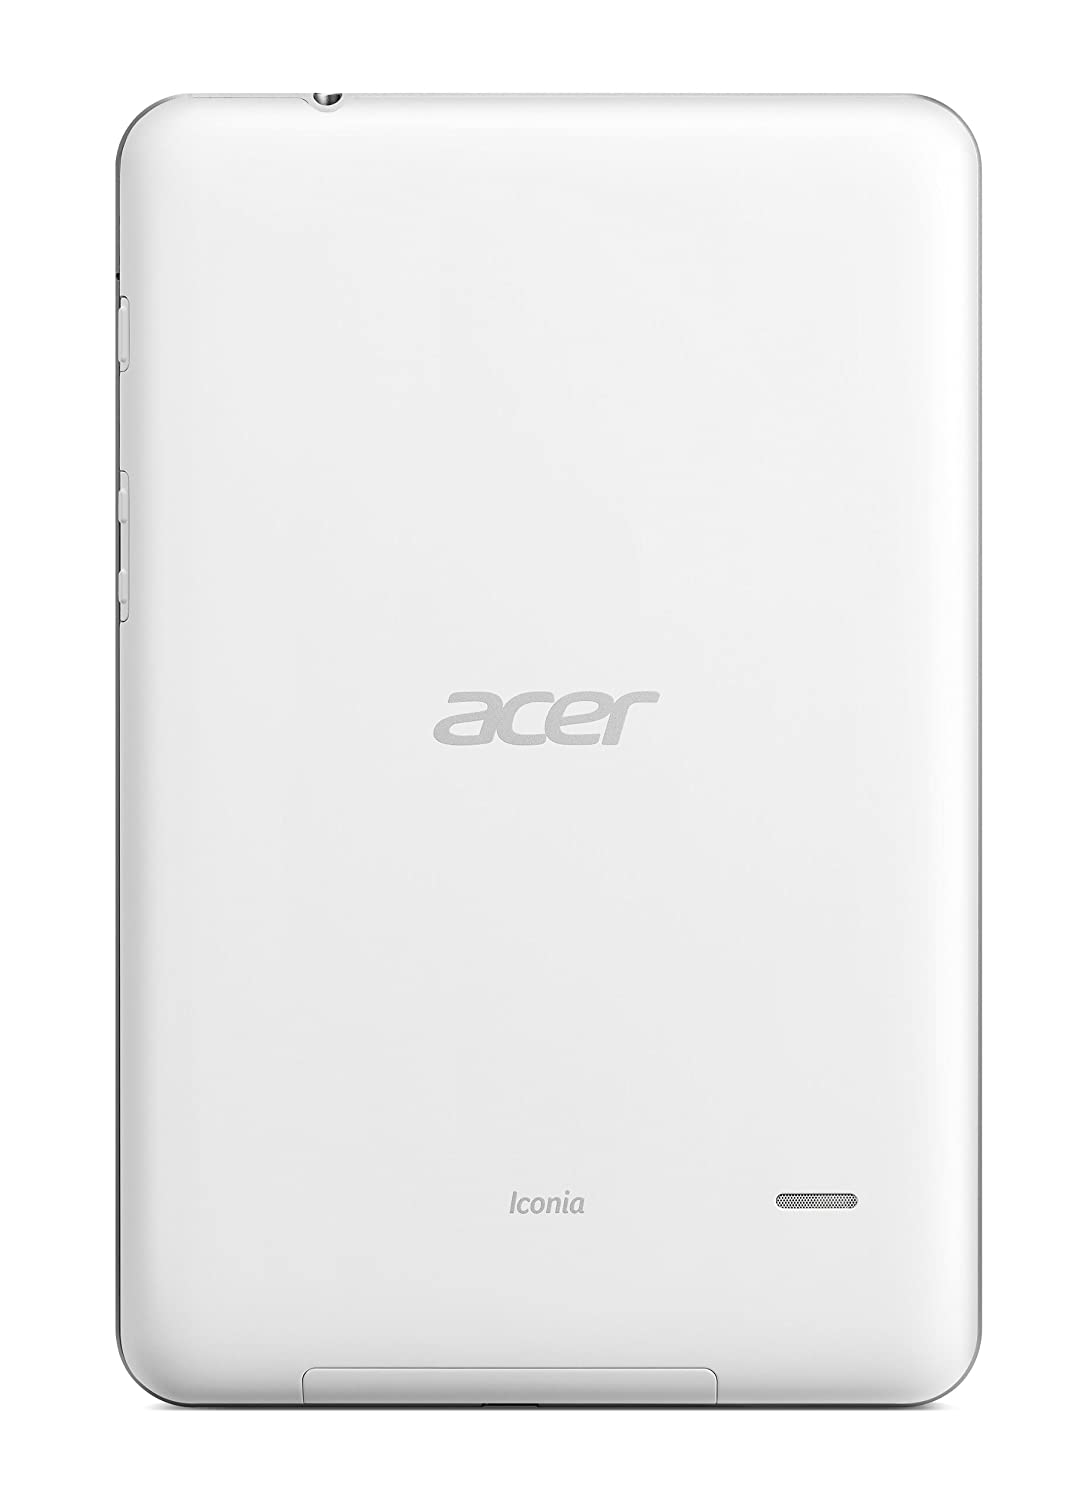 Acer Iconia B1-710 Android USB 2.0 Driver for Windows 10